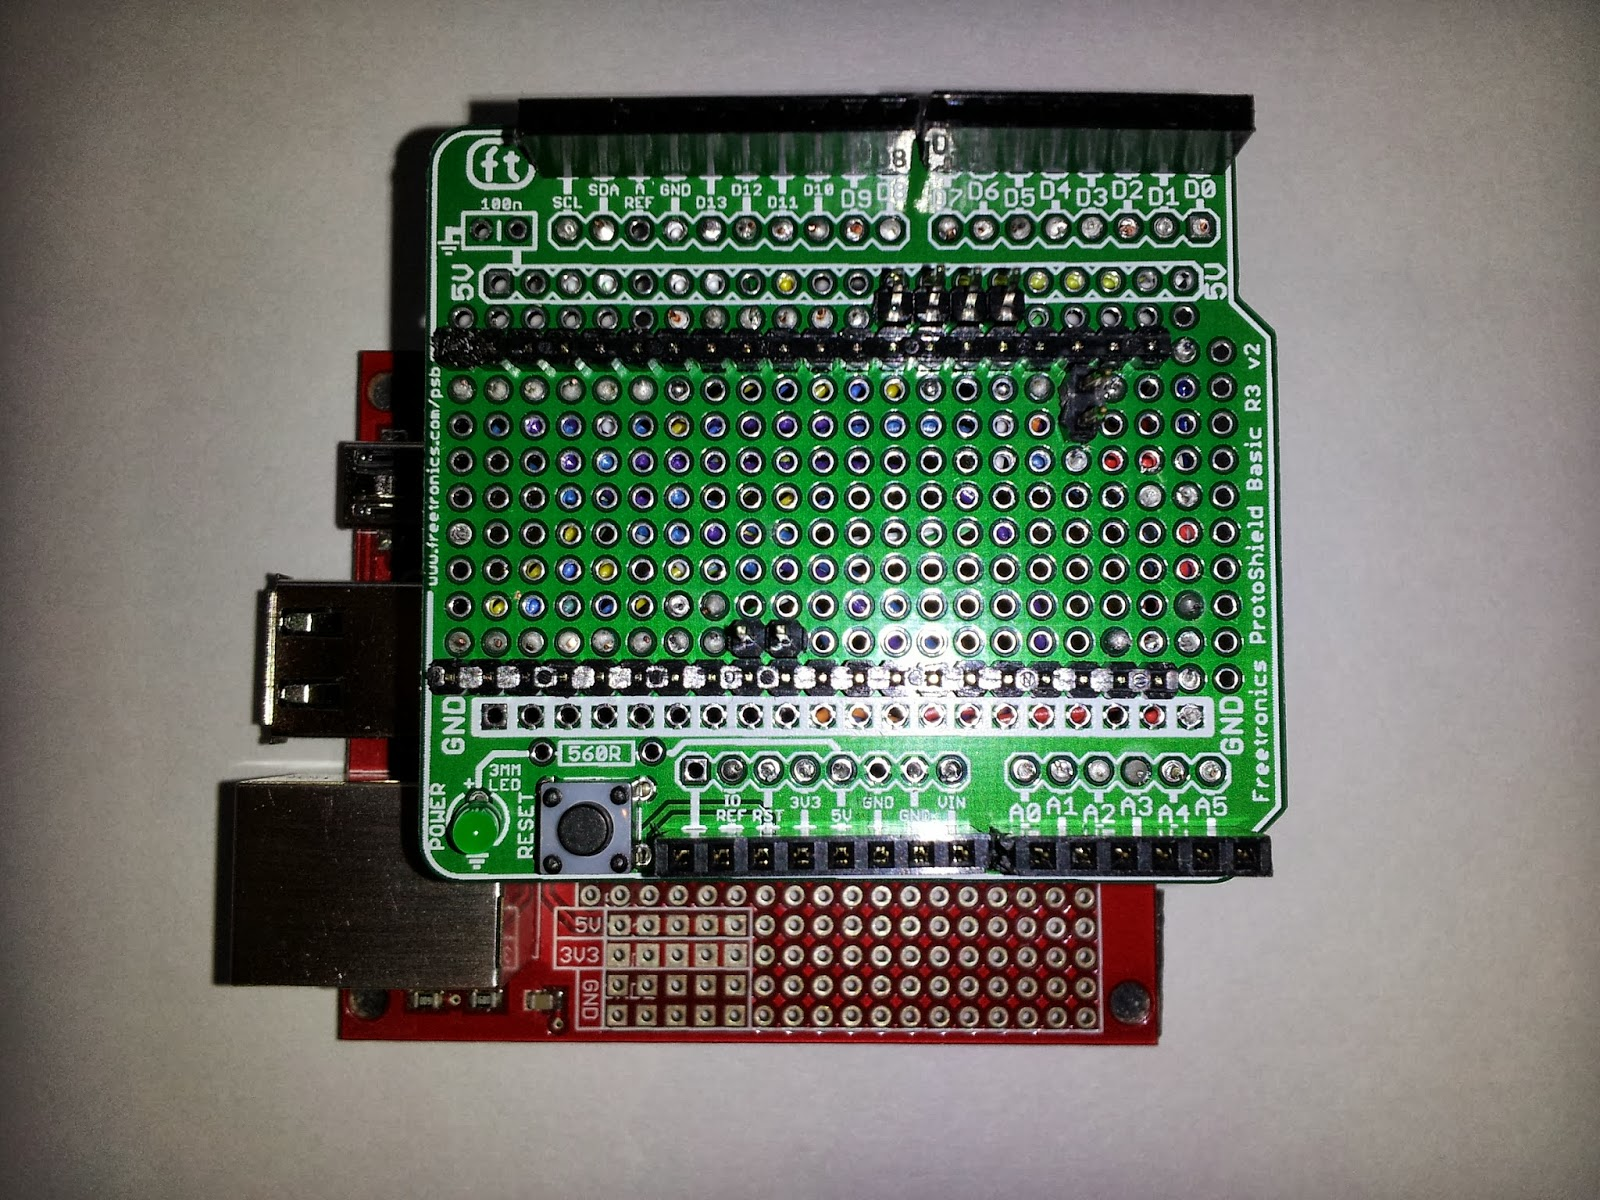 Tech with Dave: mbedR3uino: mbed adapter for Arduino shields